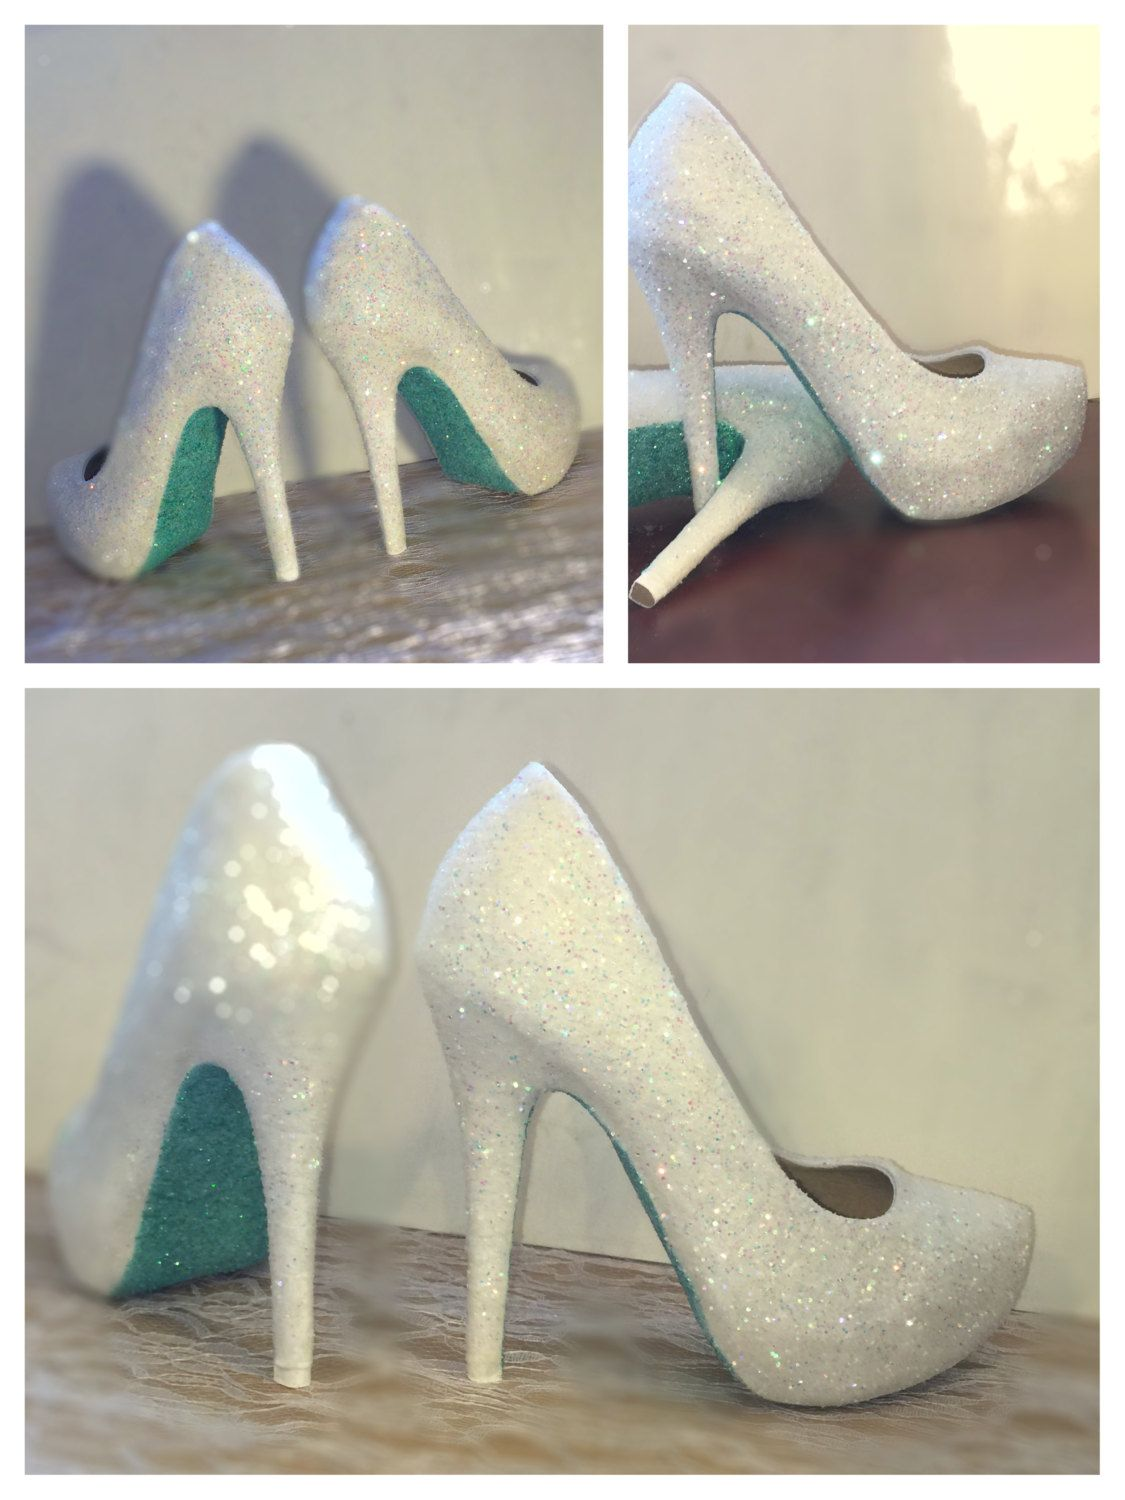 51b7c97977f Women s Sparkly glitter IVORY or WHITE sparkly mint green soles high or low  heels heel pumps stiletto wedding bride peep toe or pumps by CrystalCleatss  on ...